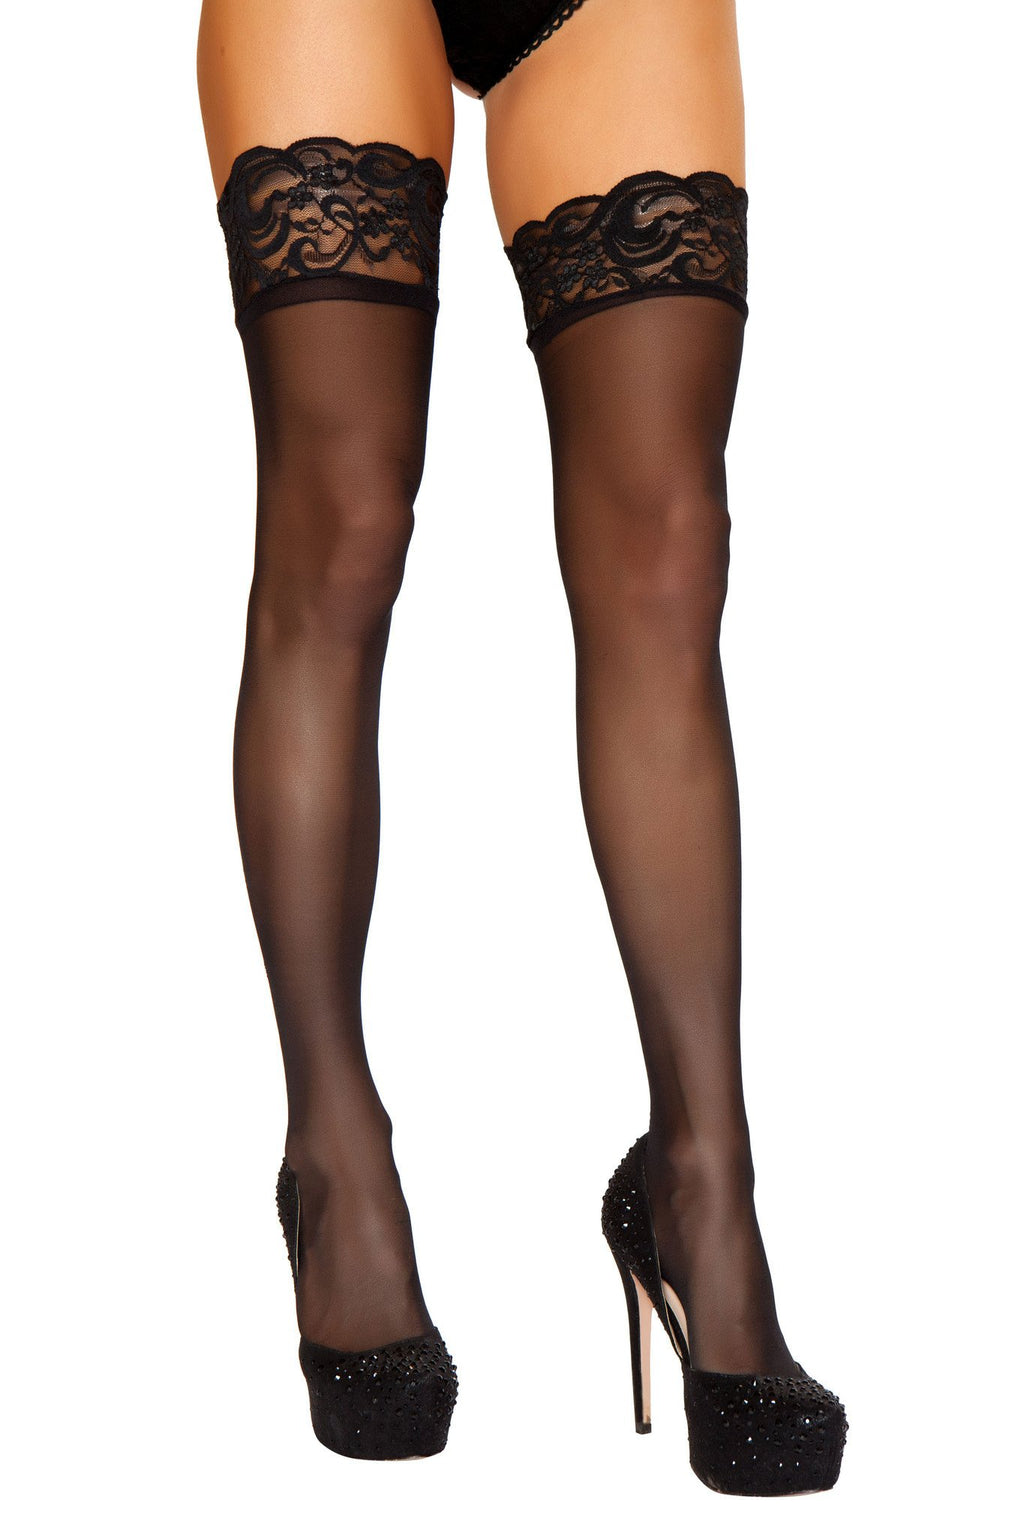 Black Sheer Stockings with Lace Trim